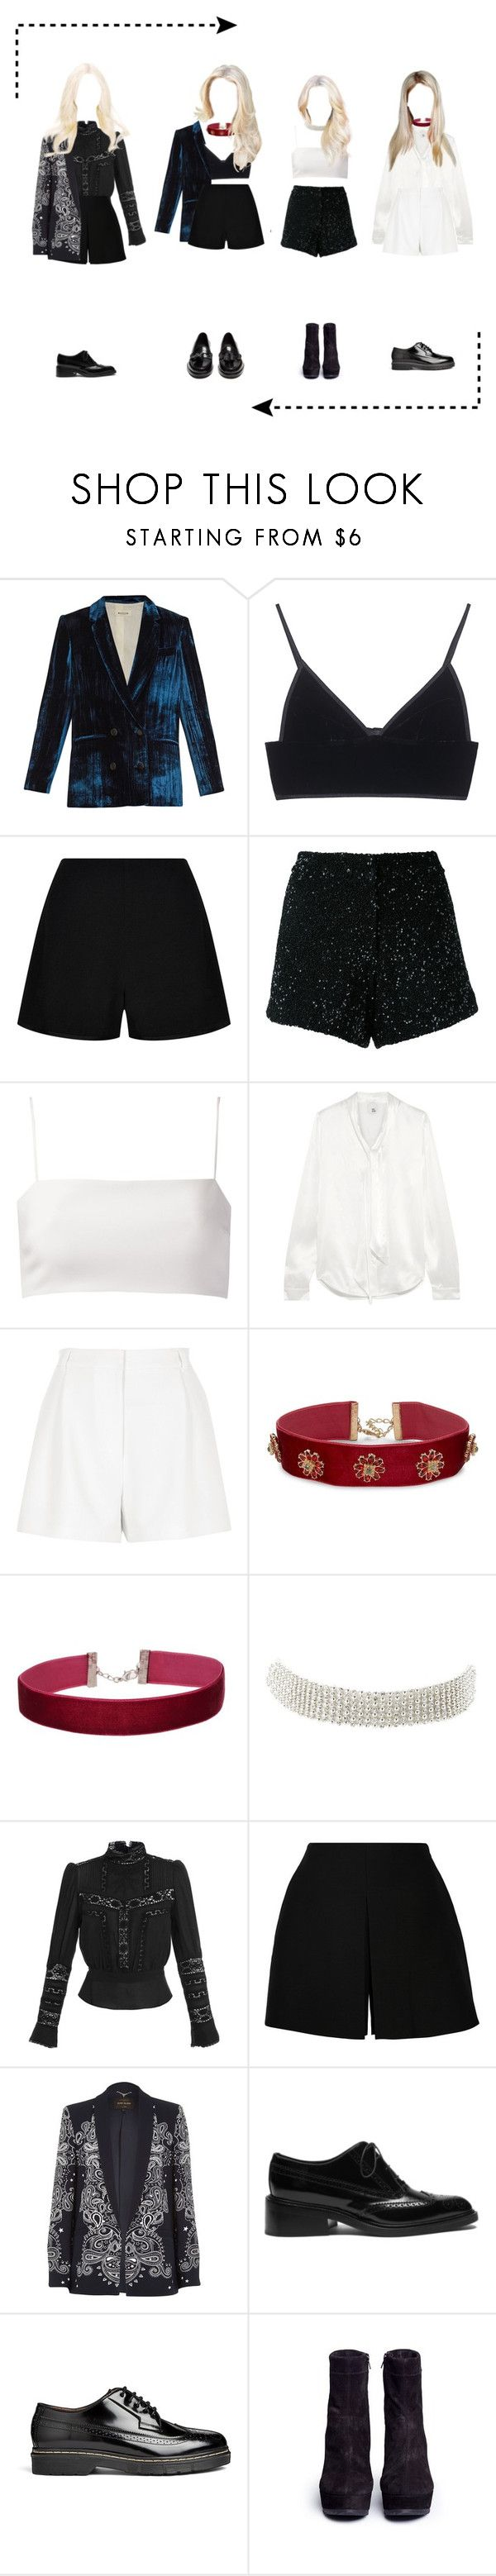 """""""""""Blood Sweat & Tears"""" Music Video — KAI"""" by bbofficial ❤ liked on Polyvore featuring MASSCOB, T By Alexander Wang, Reiss, Manish Arora, Giuliana Romanno, Iris & Ink, River Island, Design Lab, Miss Selfridge and Charlotte Russe"""